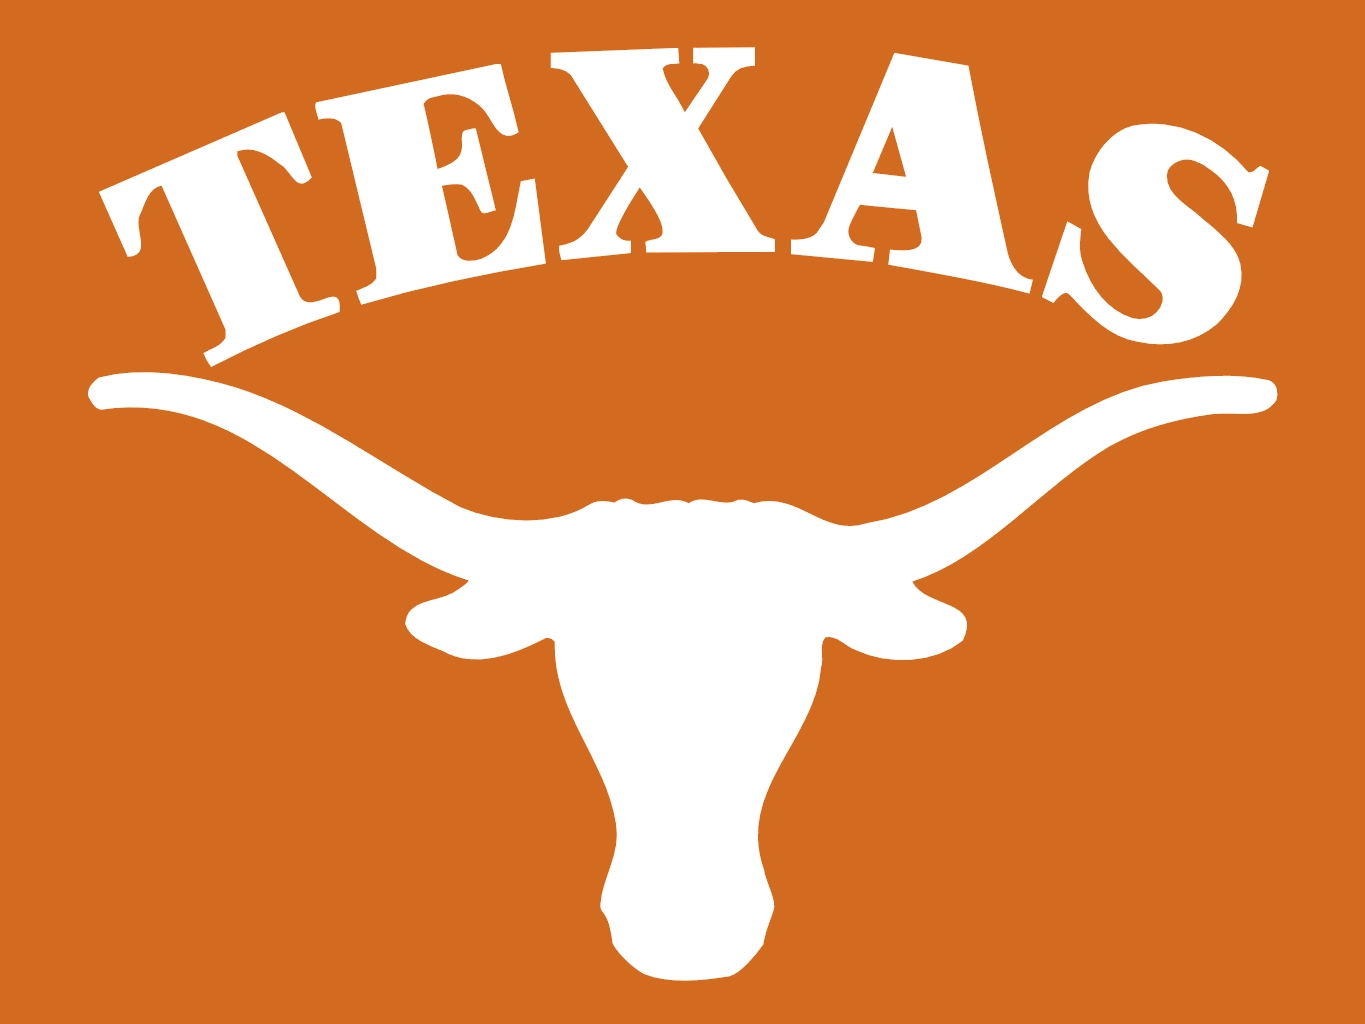 University Texas Longhorn Clipart Free.